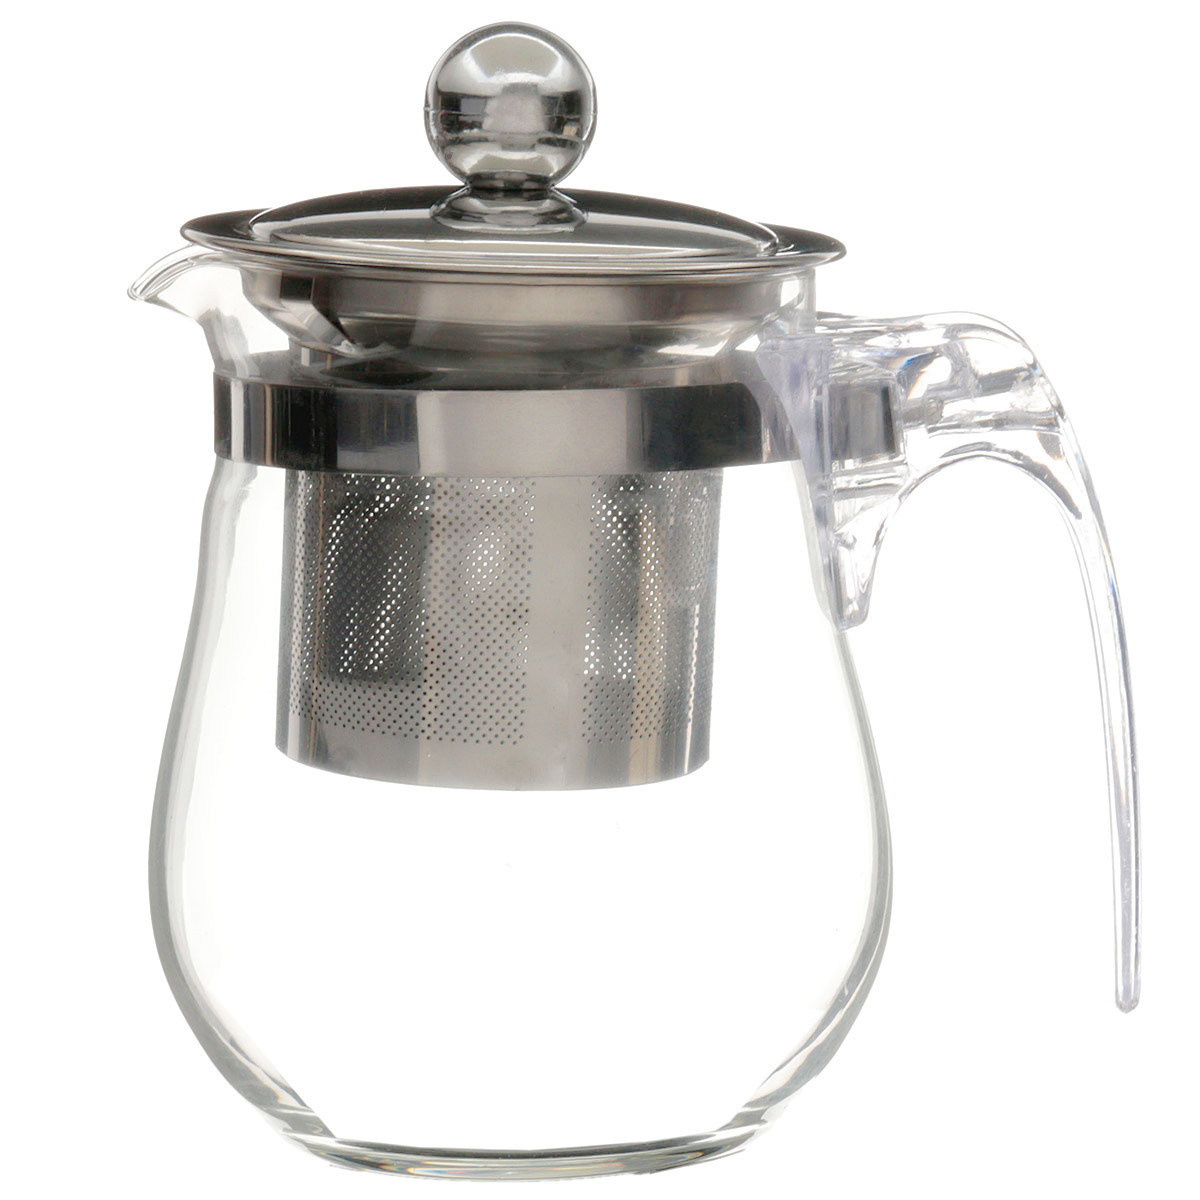 350mL 12fl.oz Heat Resisting Clear Glass Teapot Stainless Steel Infuser Flower Coffee Pot Tool